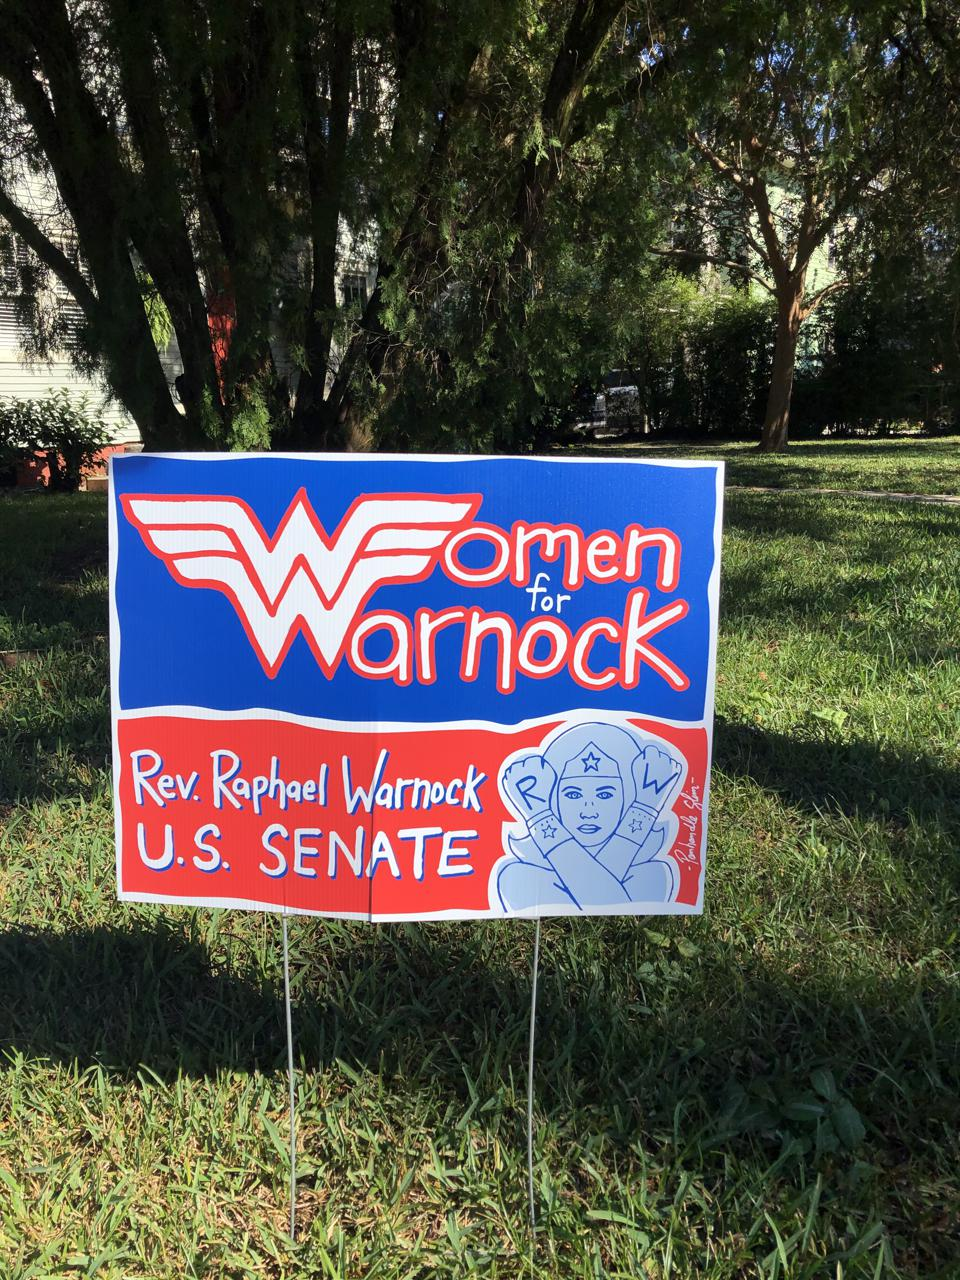 A Women for Warnock sign by Panhandle Slim.